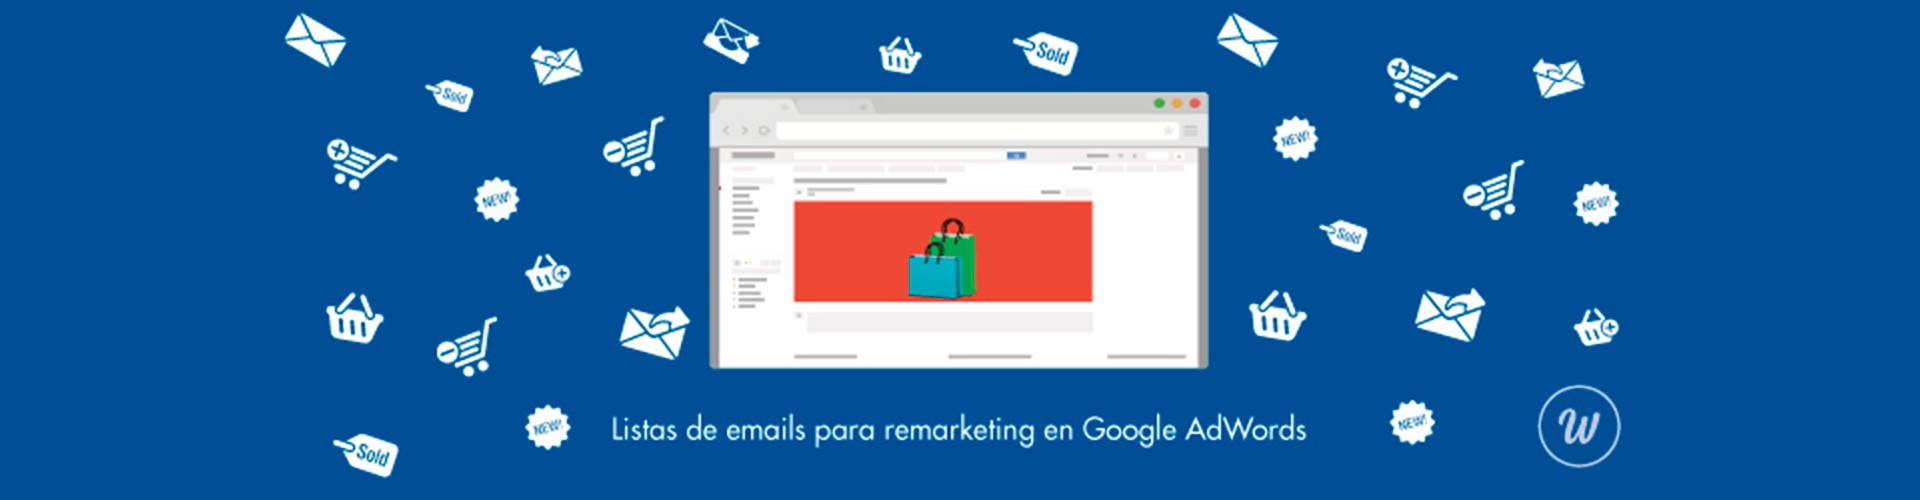 Listas de email para remarketing en AdWords: ¡Aprovecha tu base de datos!